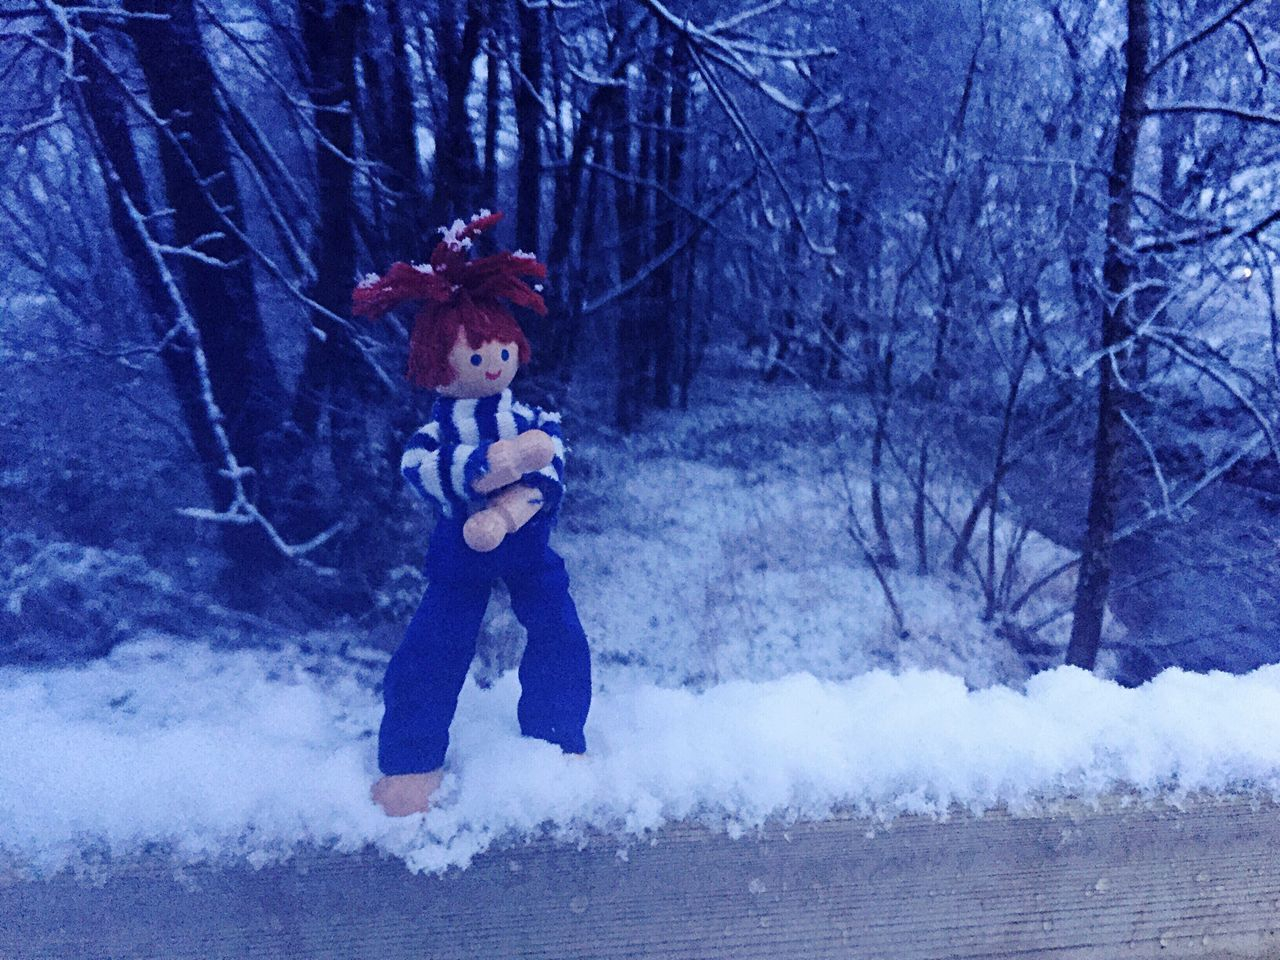 """Brrrrr....I wish I'd wore my jacket 😬..."". Children Only Winter Snow Childhood Outdoors Cold Temperature Day Today In Scotland Season  Doll Wooden Toy Just For Fun Messing Around Playing Fun"